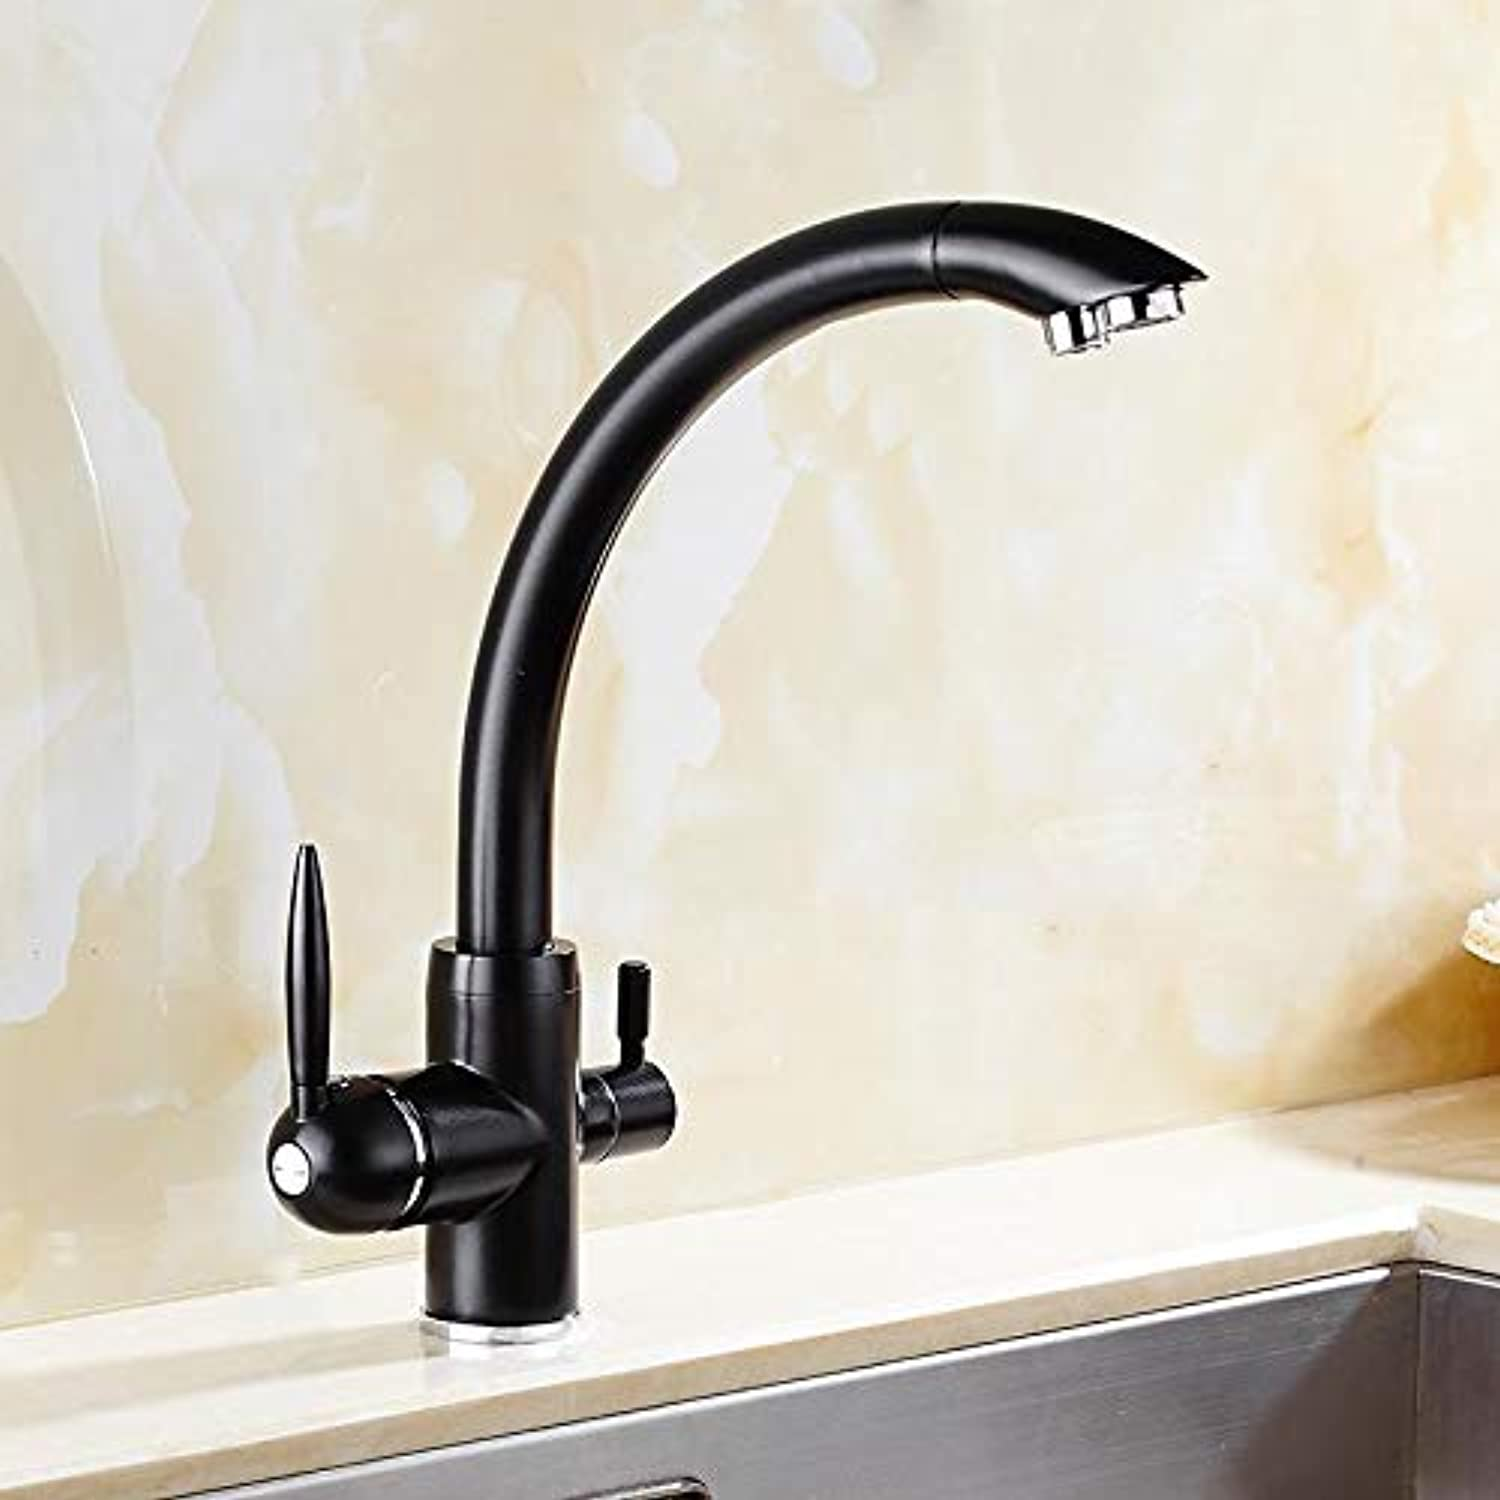 Decorry Electroplate Black Kitchen Faucets Antique Brass Bathroom Faucet Double Handles Double Holes Sink Taps Hot Cold Deck Mounted